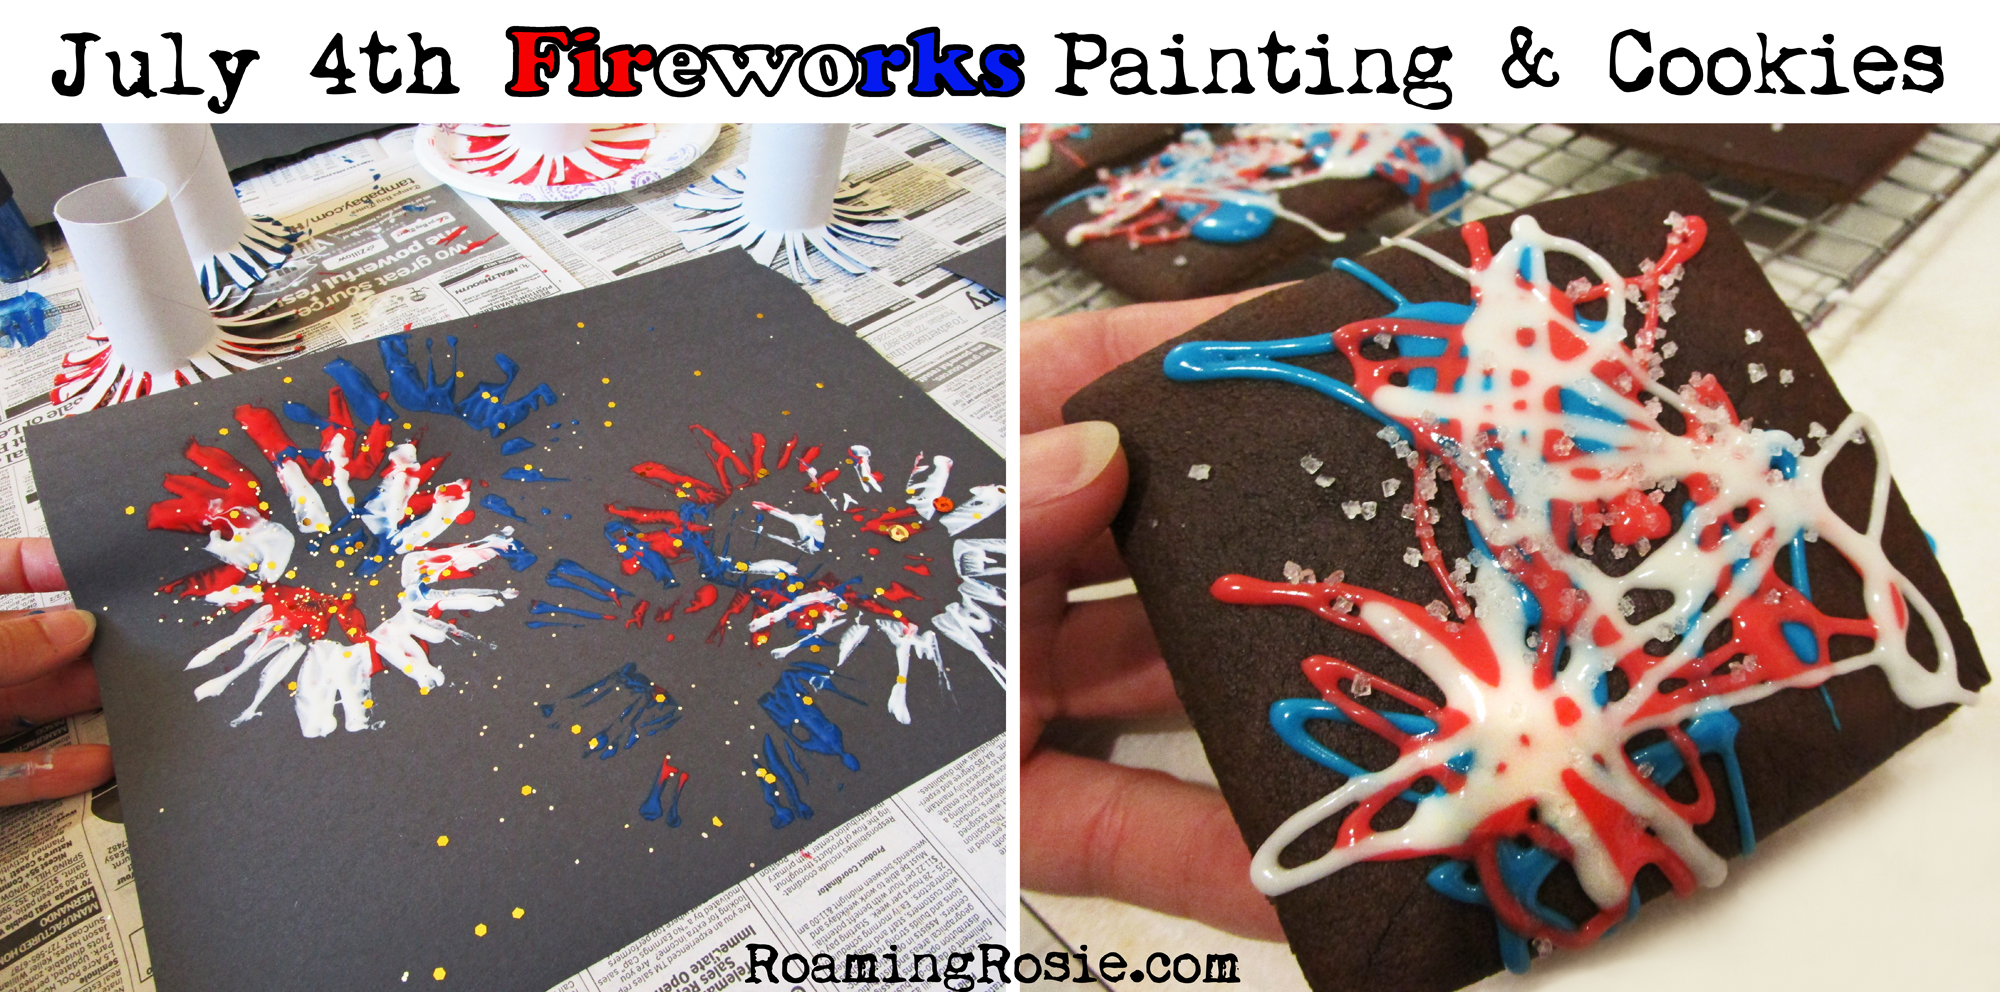 July 4th Fireworks Painting Activity and Iced Cookies with Roaming Rosie